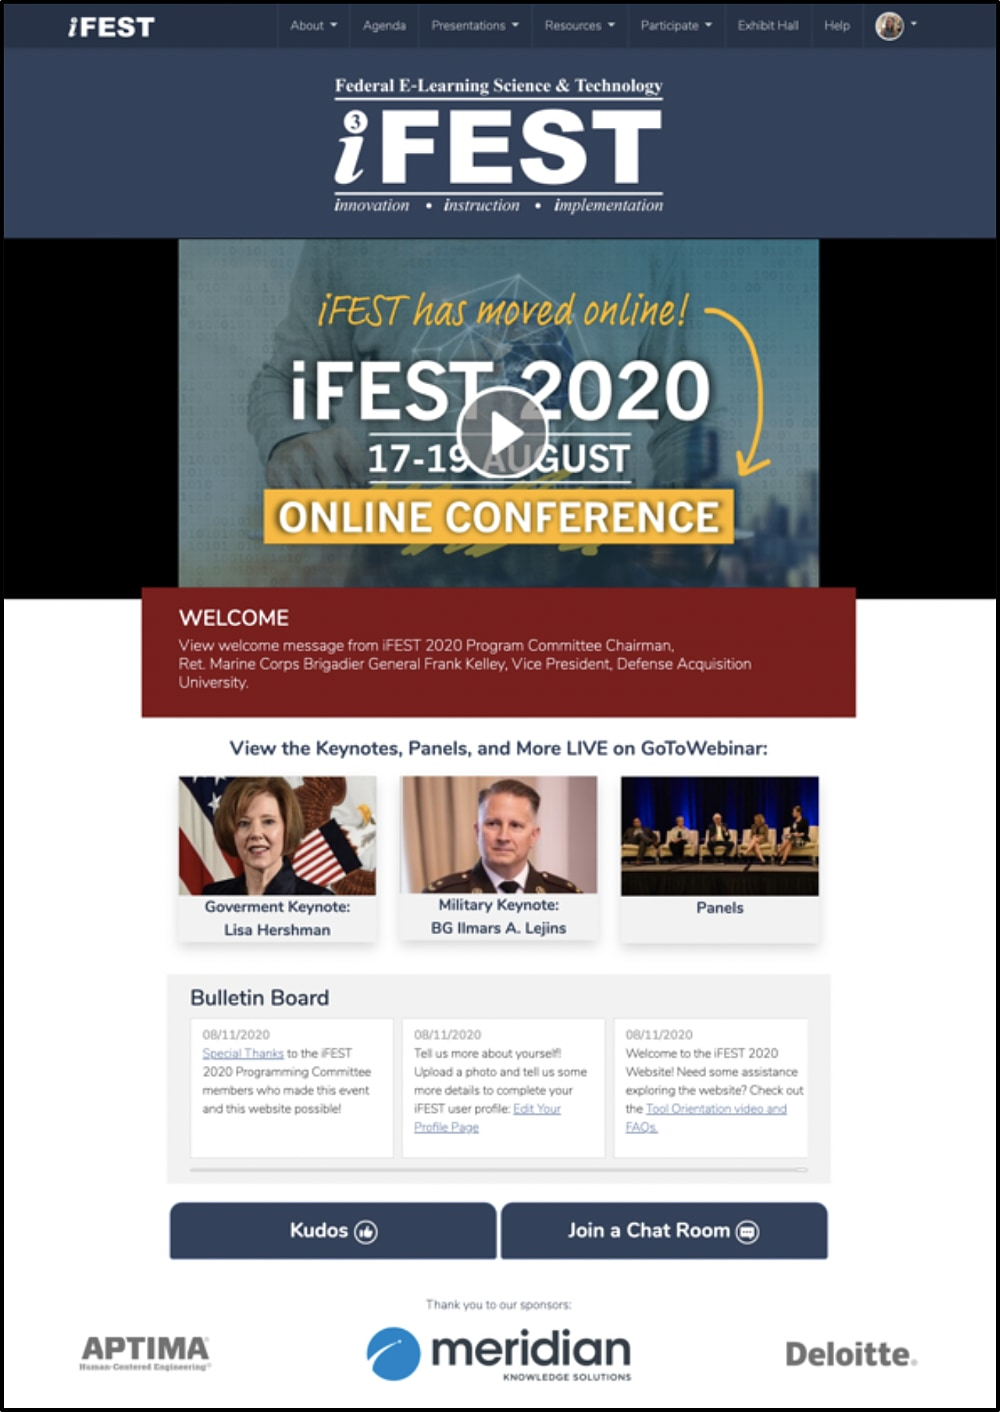 Home Page of www.iFEST2020.com